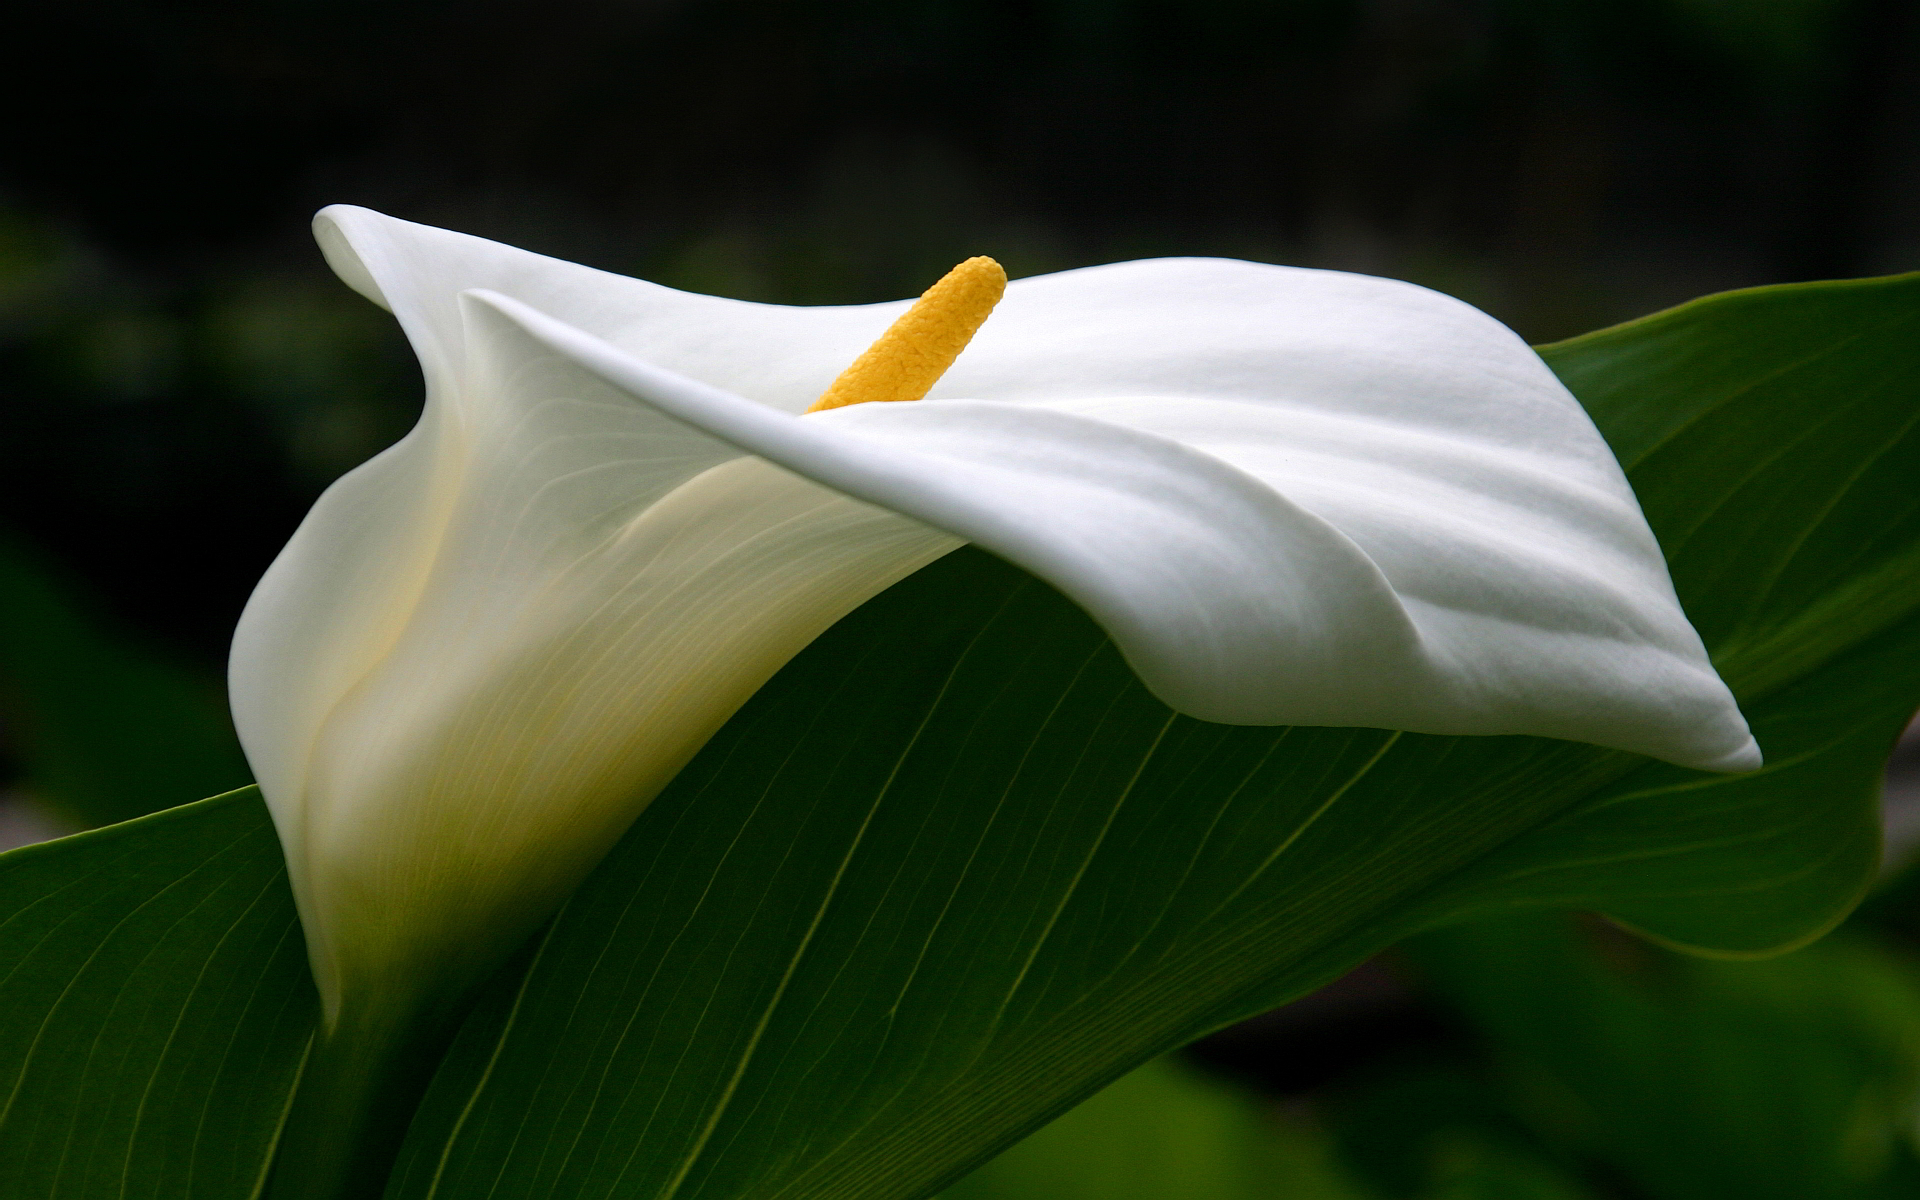 White Calla Lilies HD Wallpaper Flowers Wallpapers 1920x1200